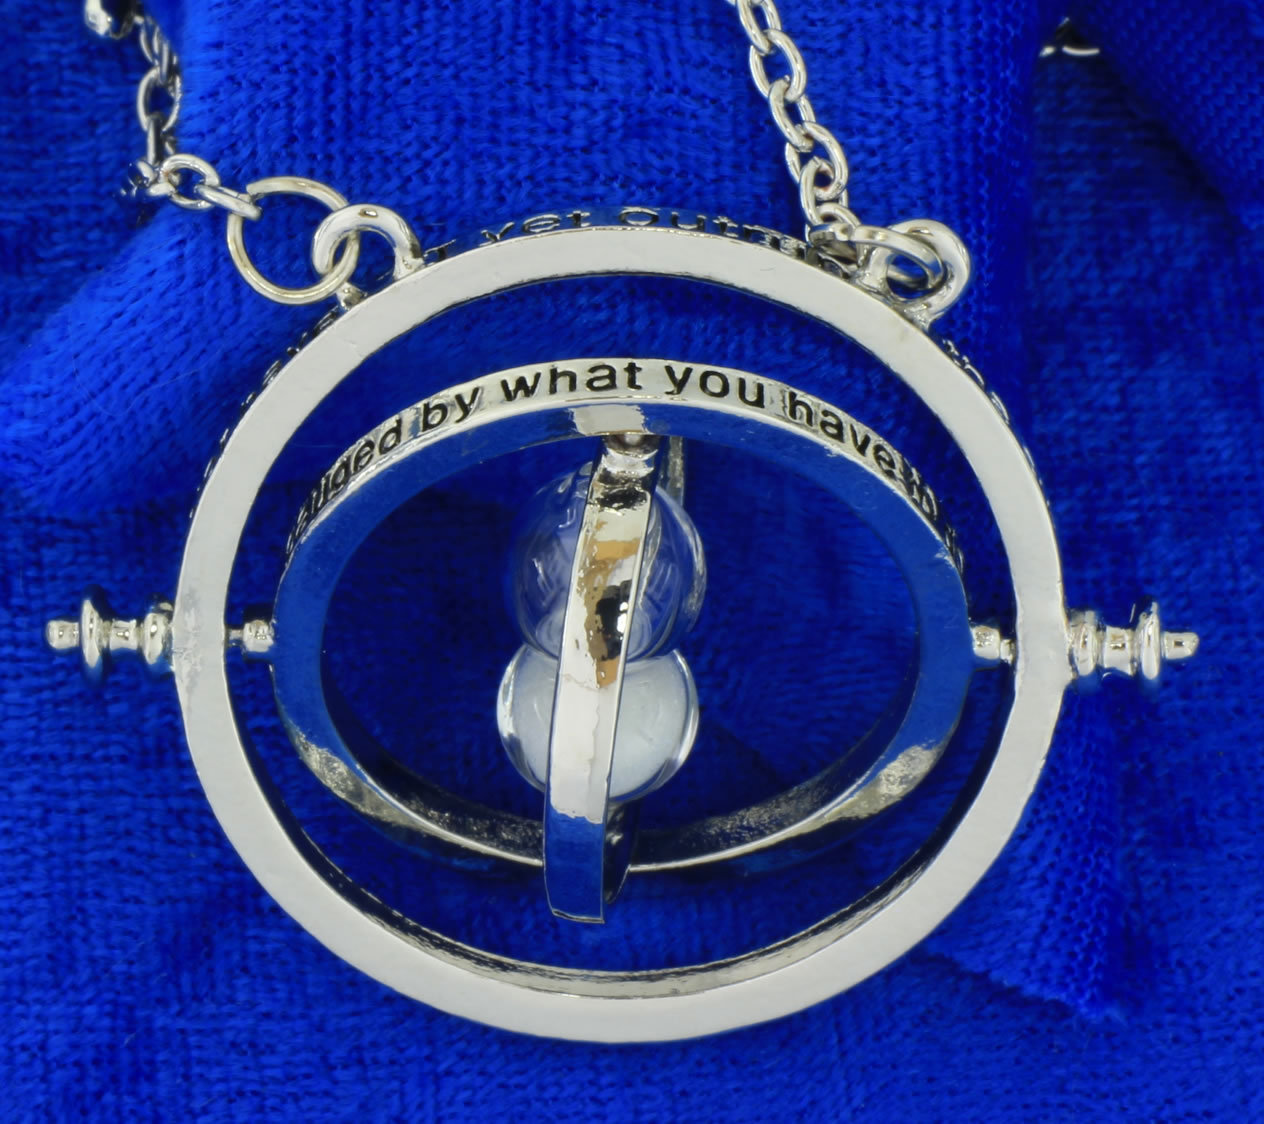 Time Turner Necklace Silver/White Hermione Granger's Chain Length Choice